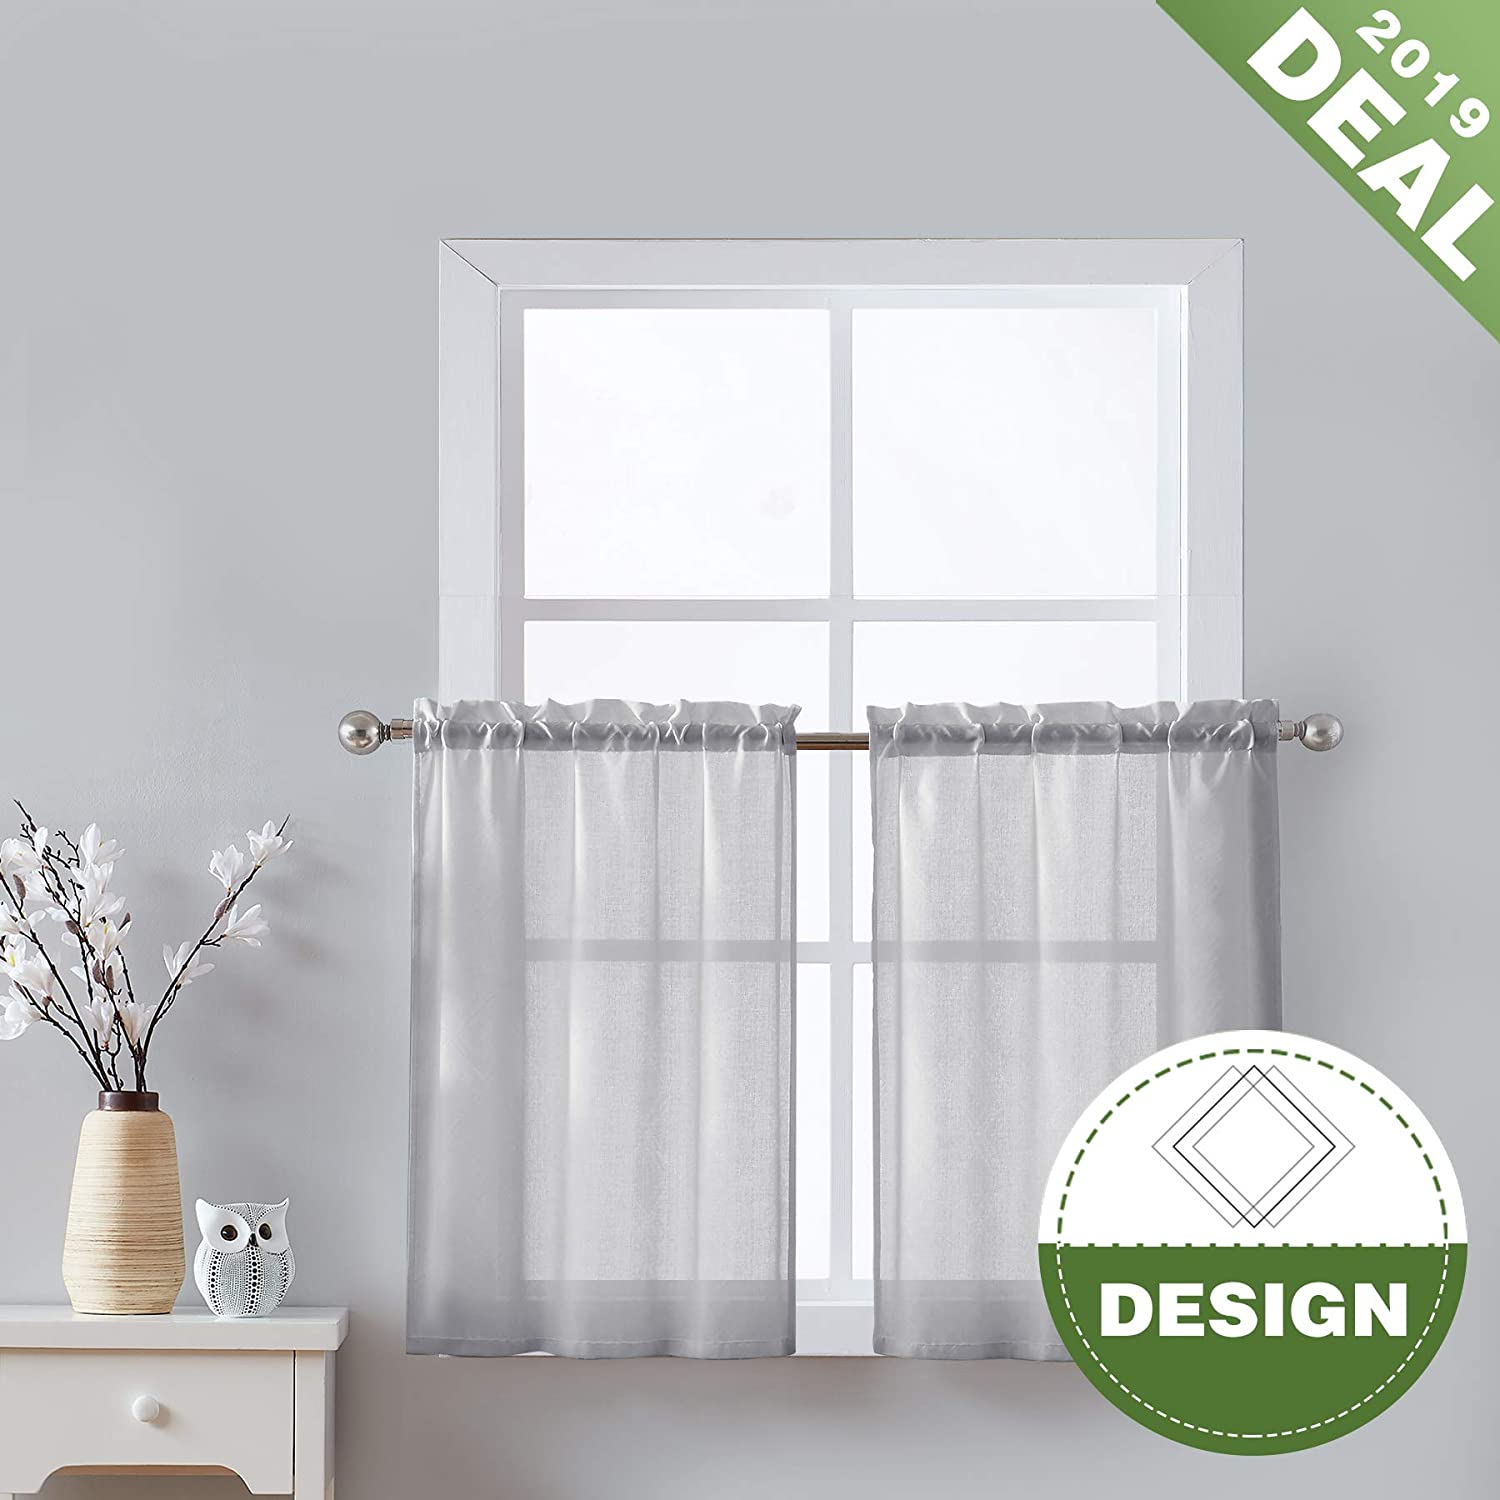 Gray Kitchen Curtains 36-inches Long Opaque Half Window Tier Moroccan Tile  Pattern Jacquard Café Curtain Sheers for Bathroom Windowsill 2 Panels